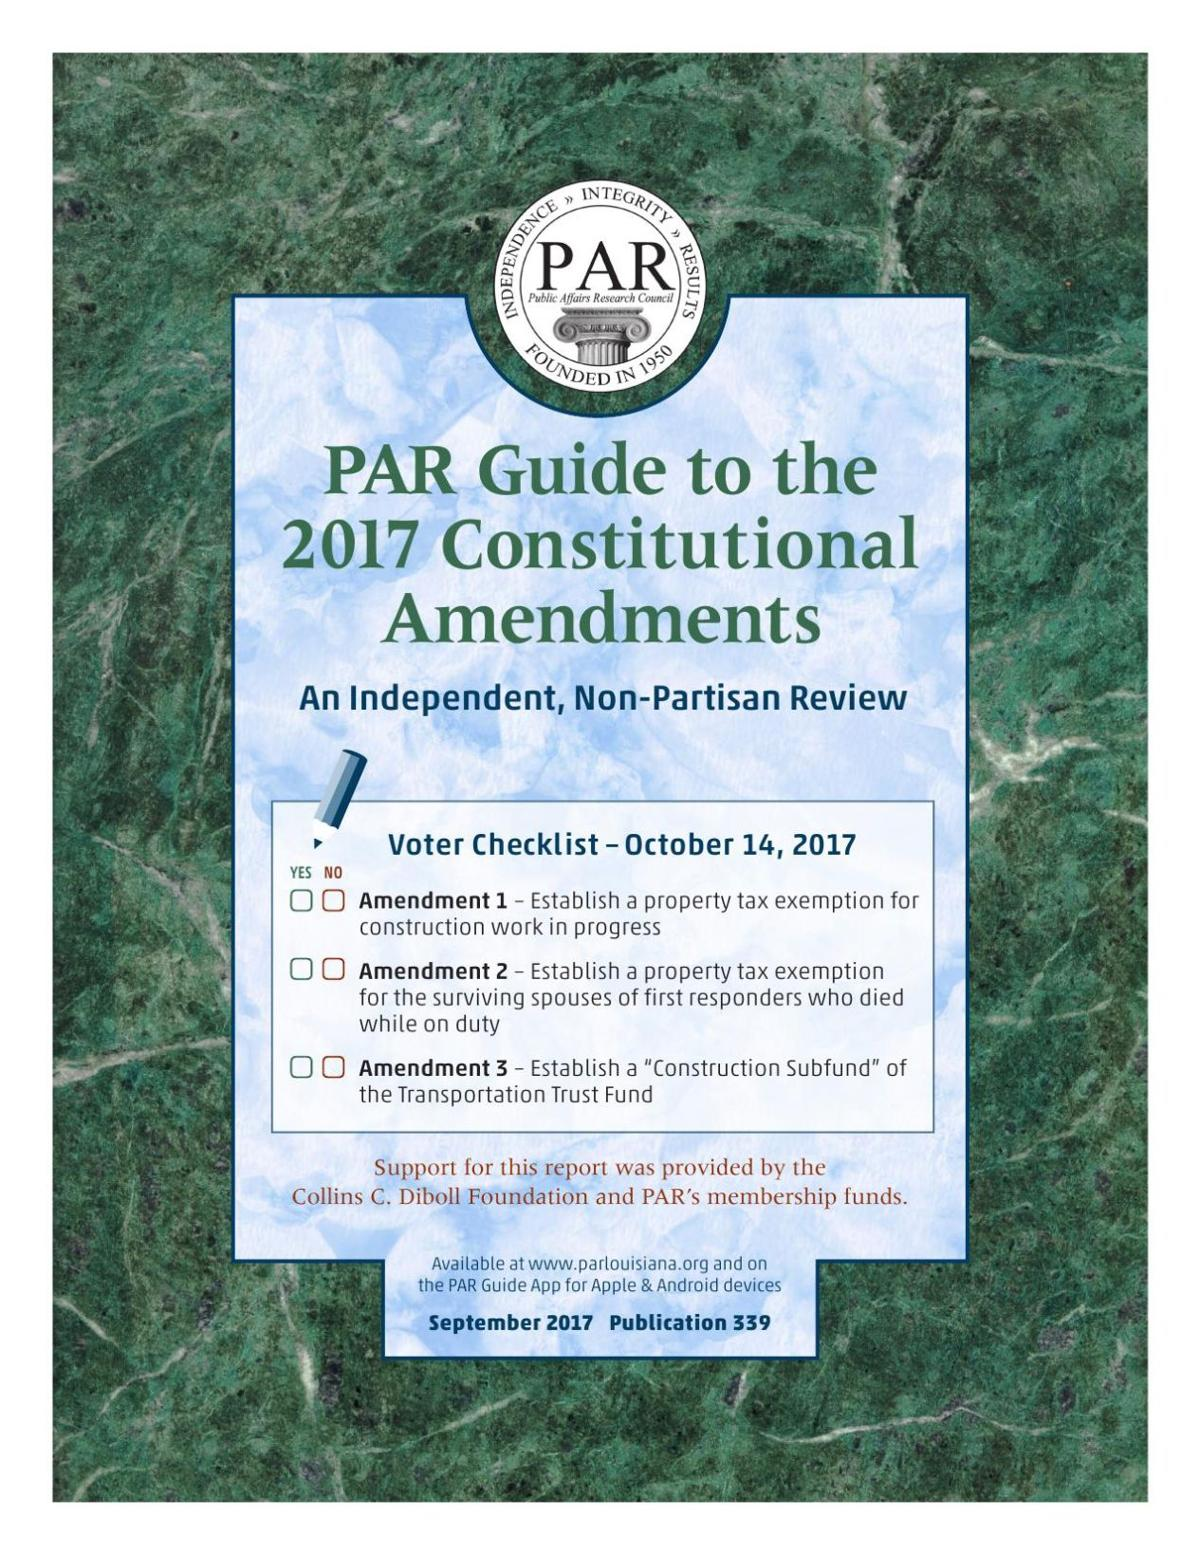 PAR Guide to the 2017 Constitutional Amendments